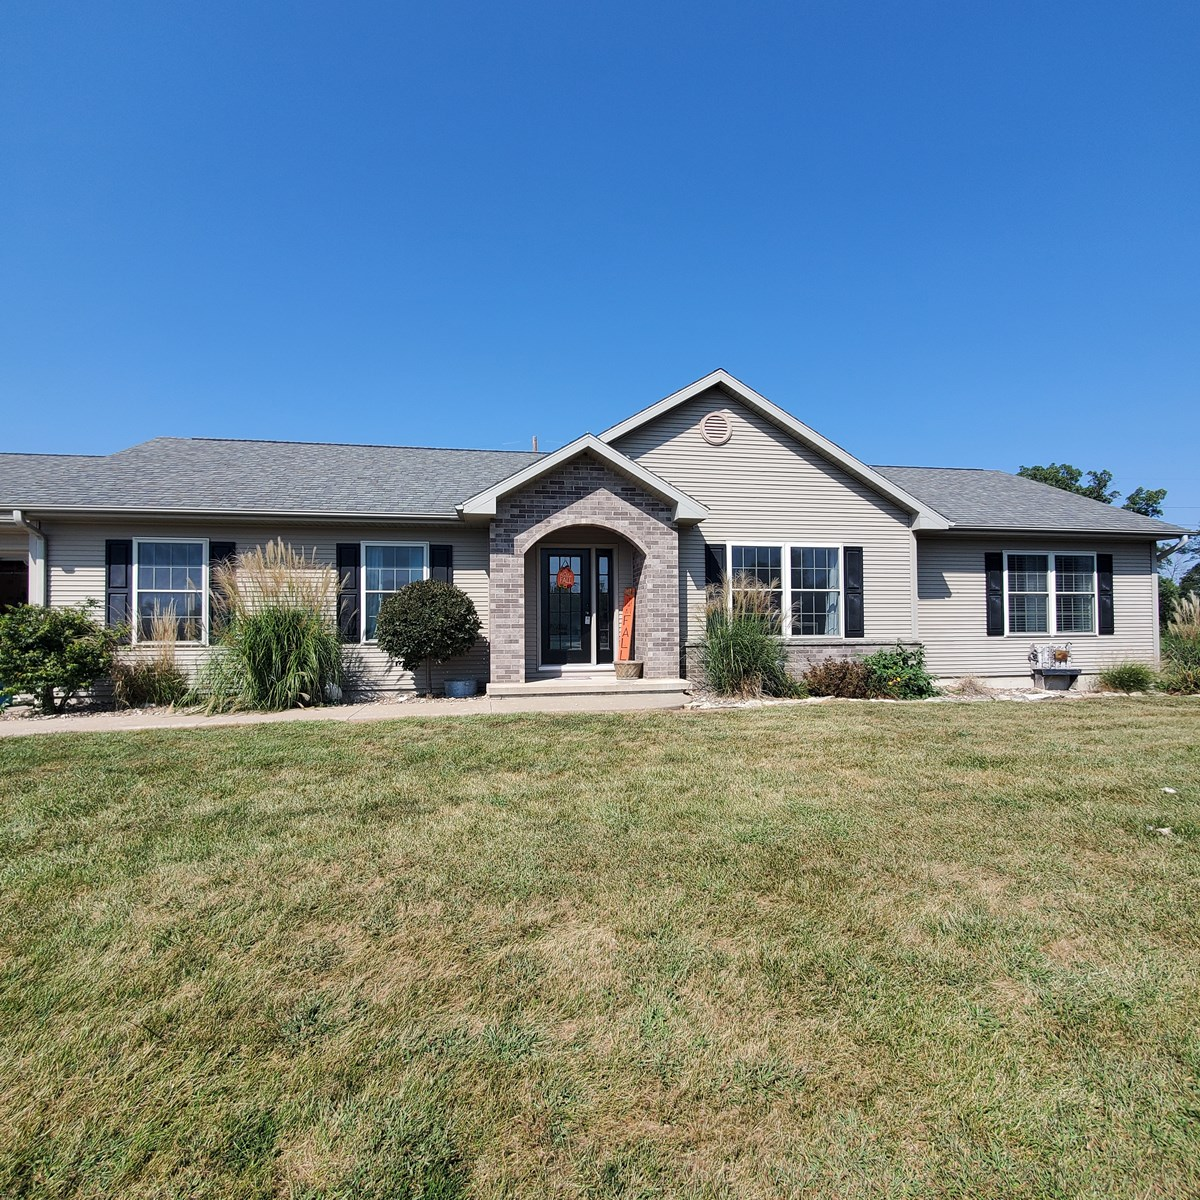 A GEM in LEE COUNTY, Very Sought After Location.